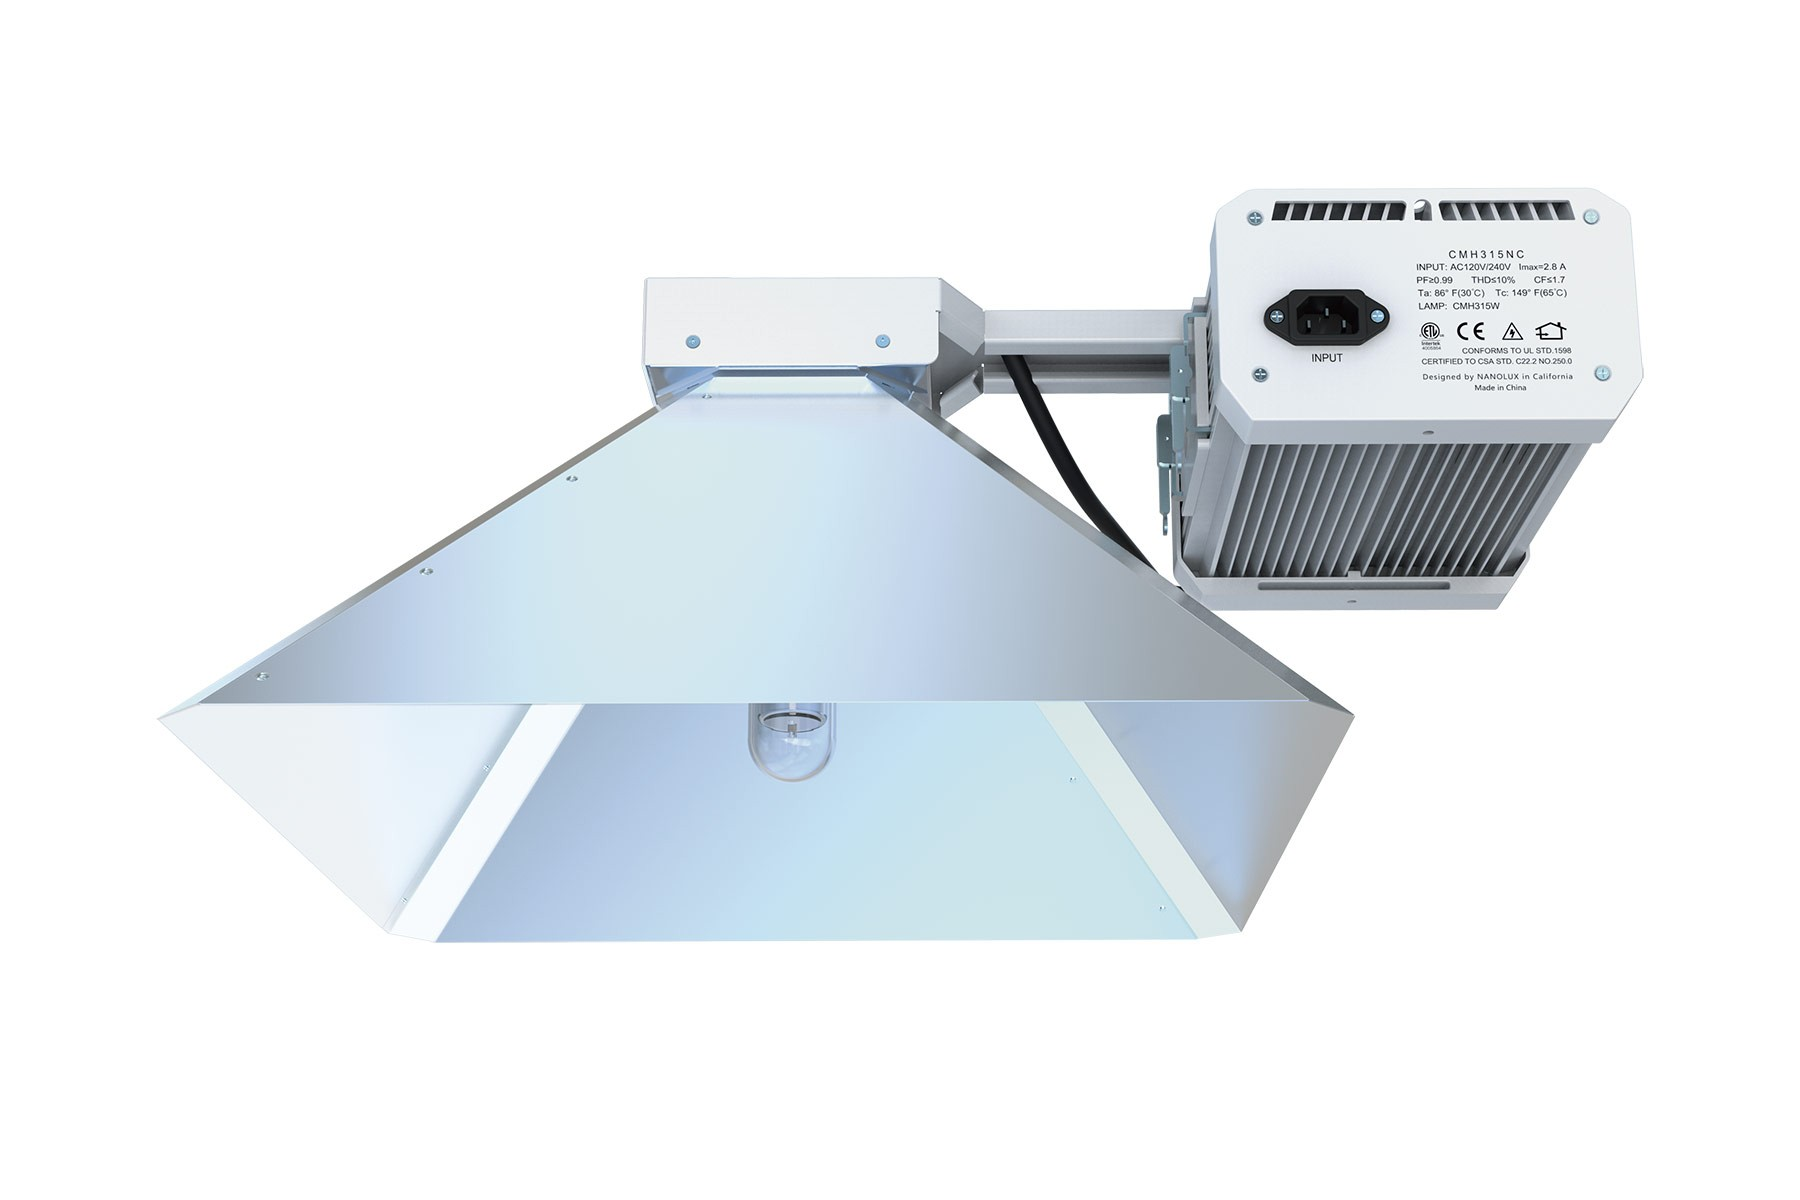 lamp k w i grow fixture light system lec image sun volt commercial